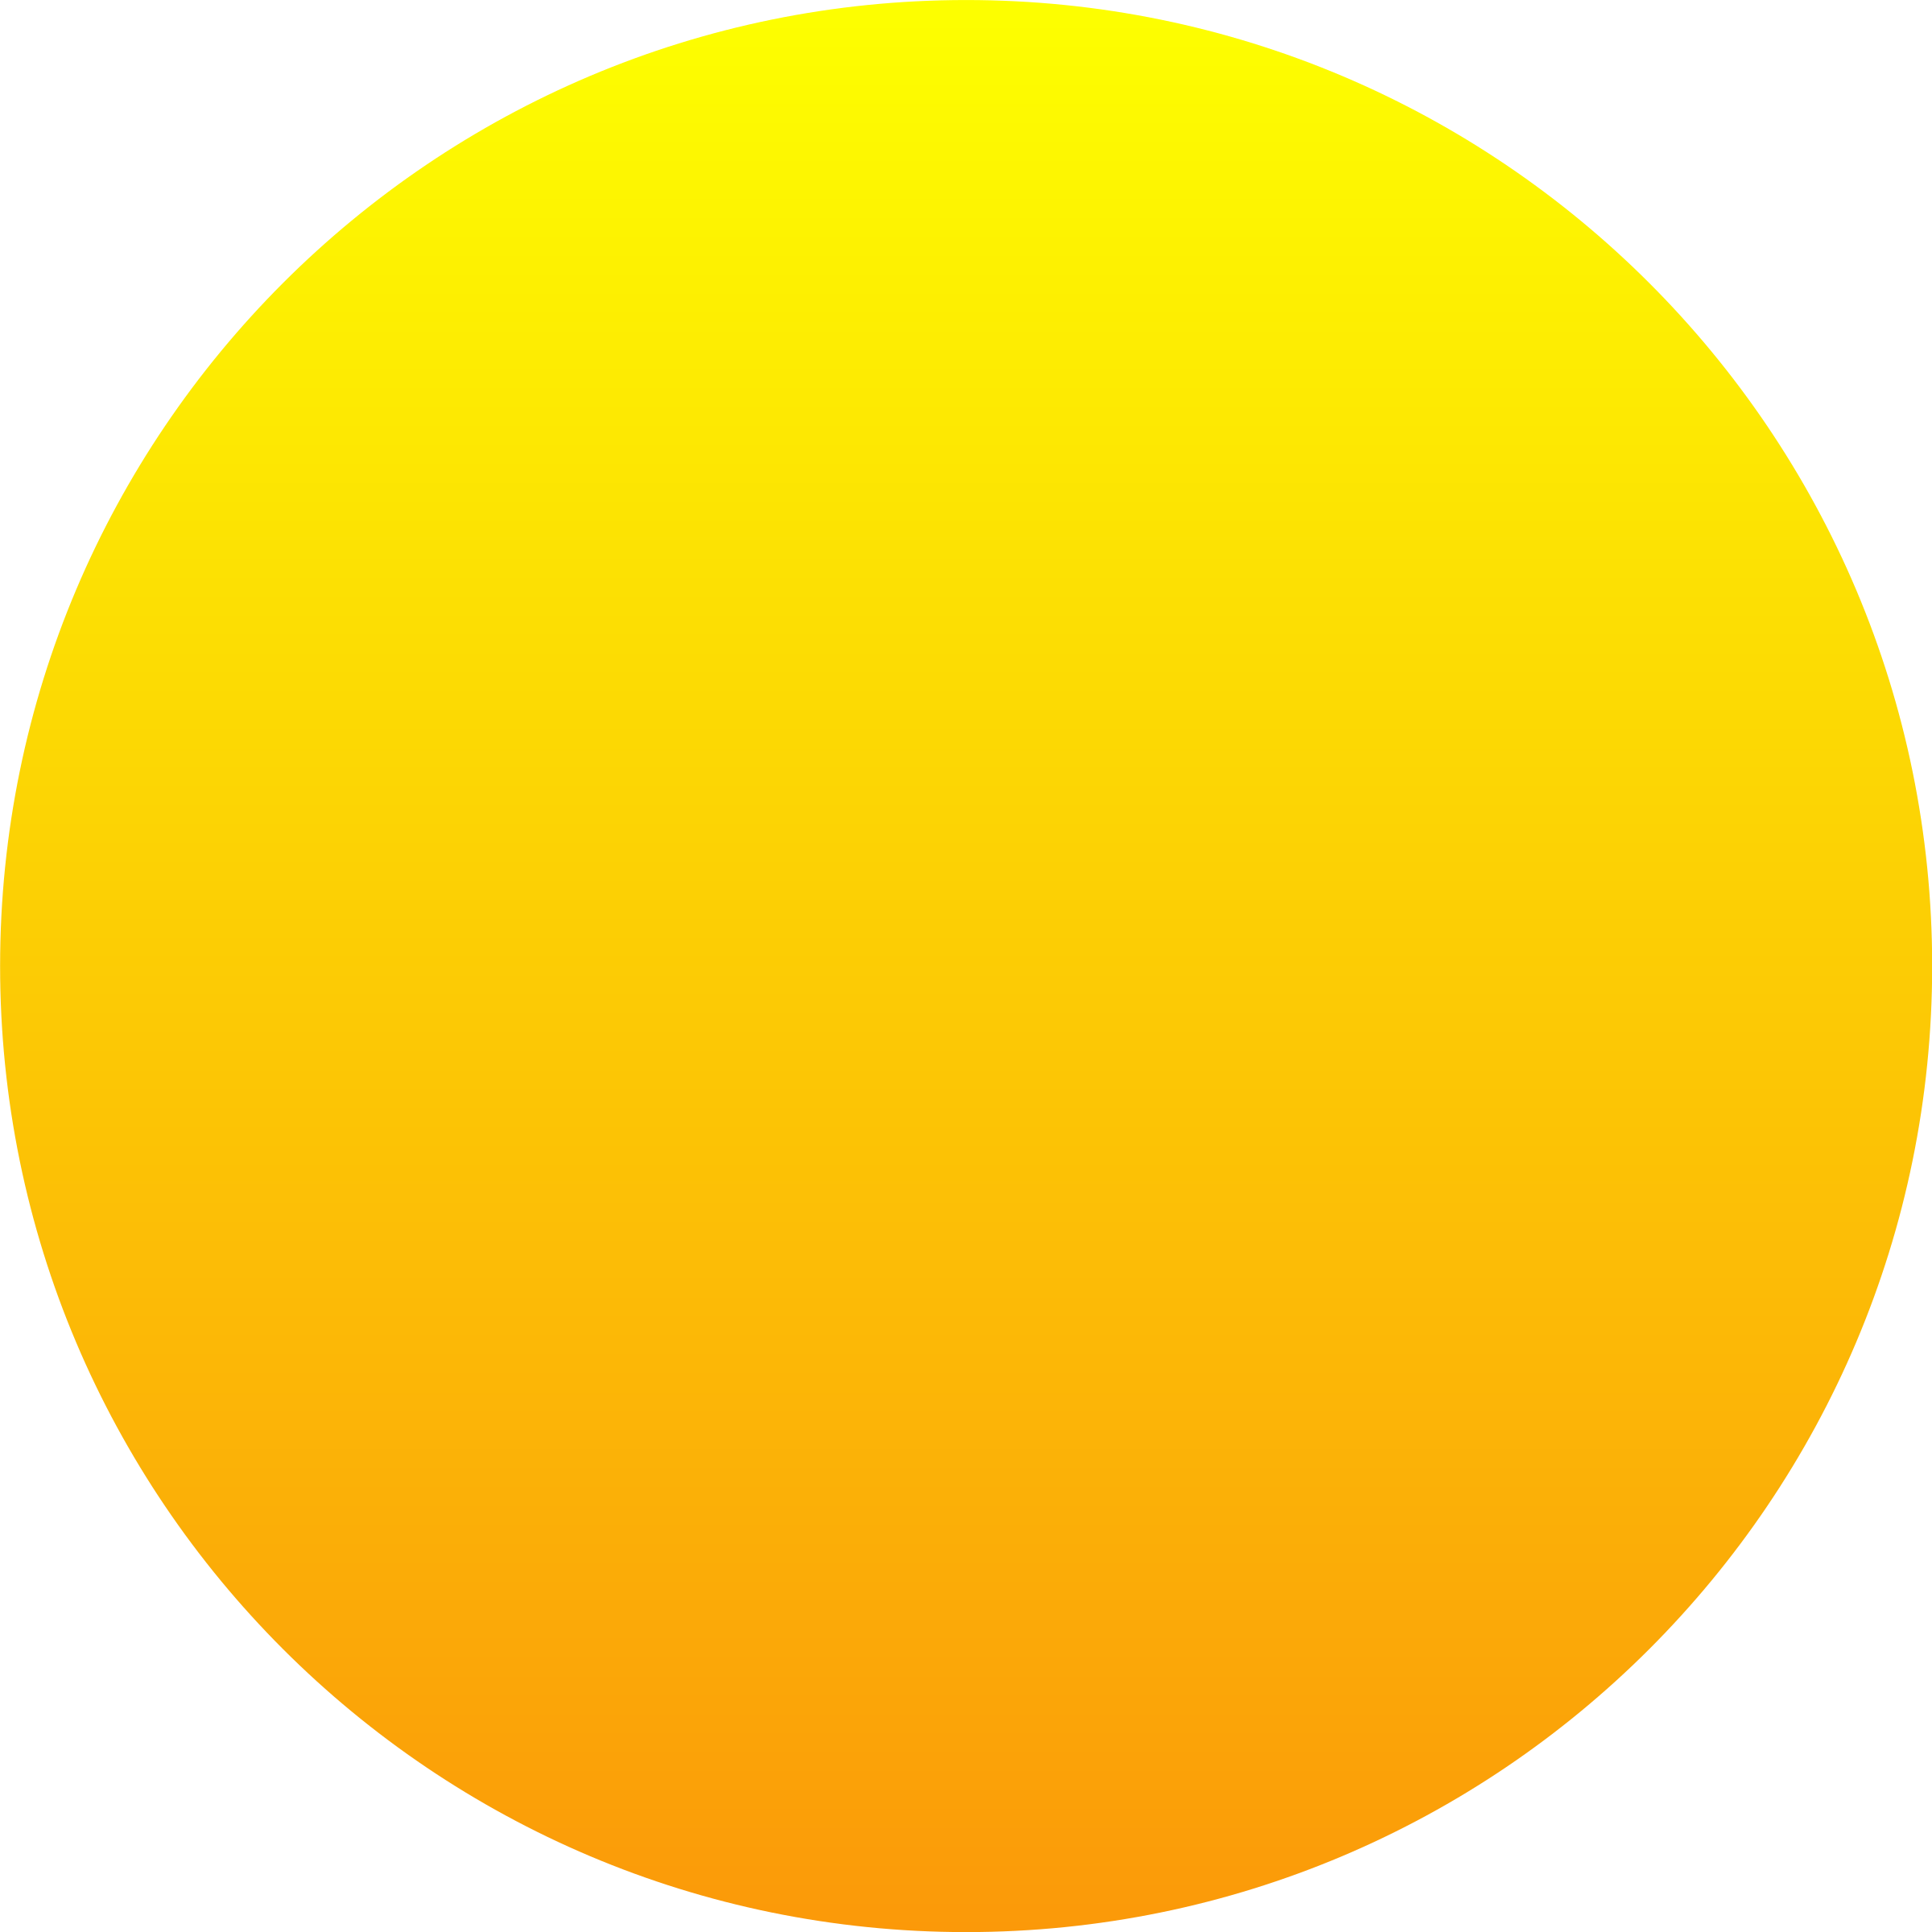 The Ball Is Round Yellow Sun Pictures image #48189